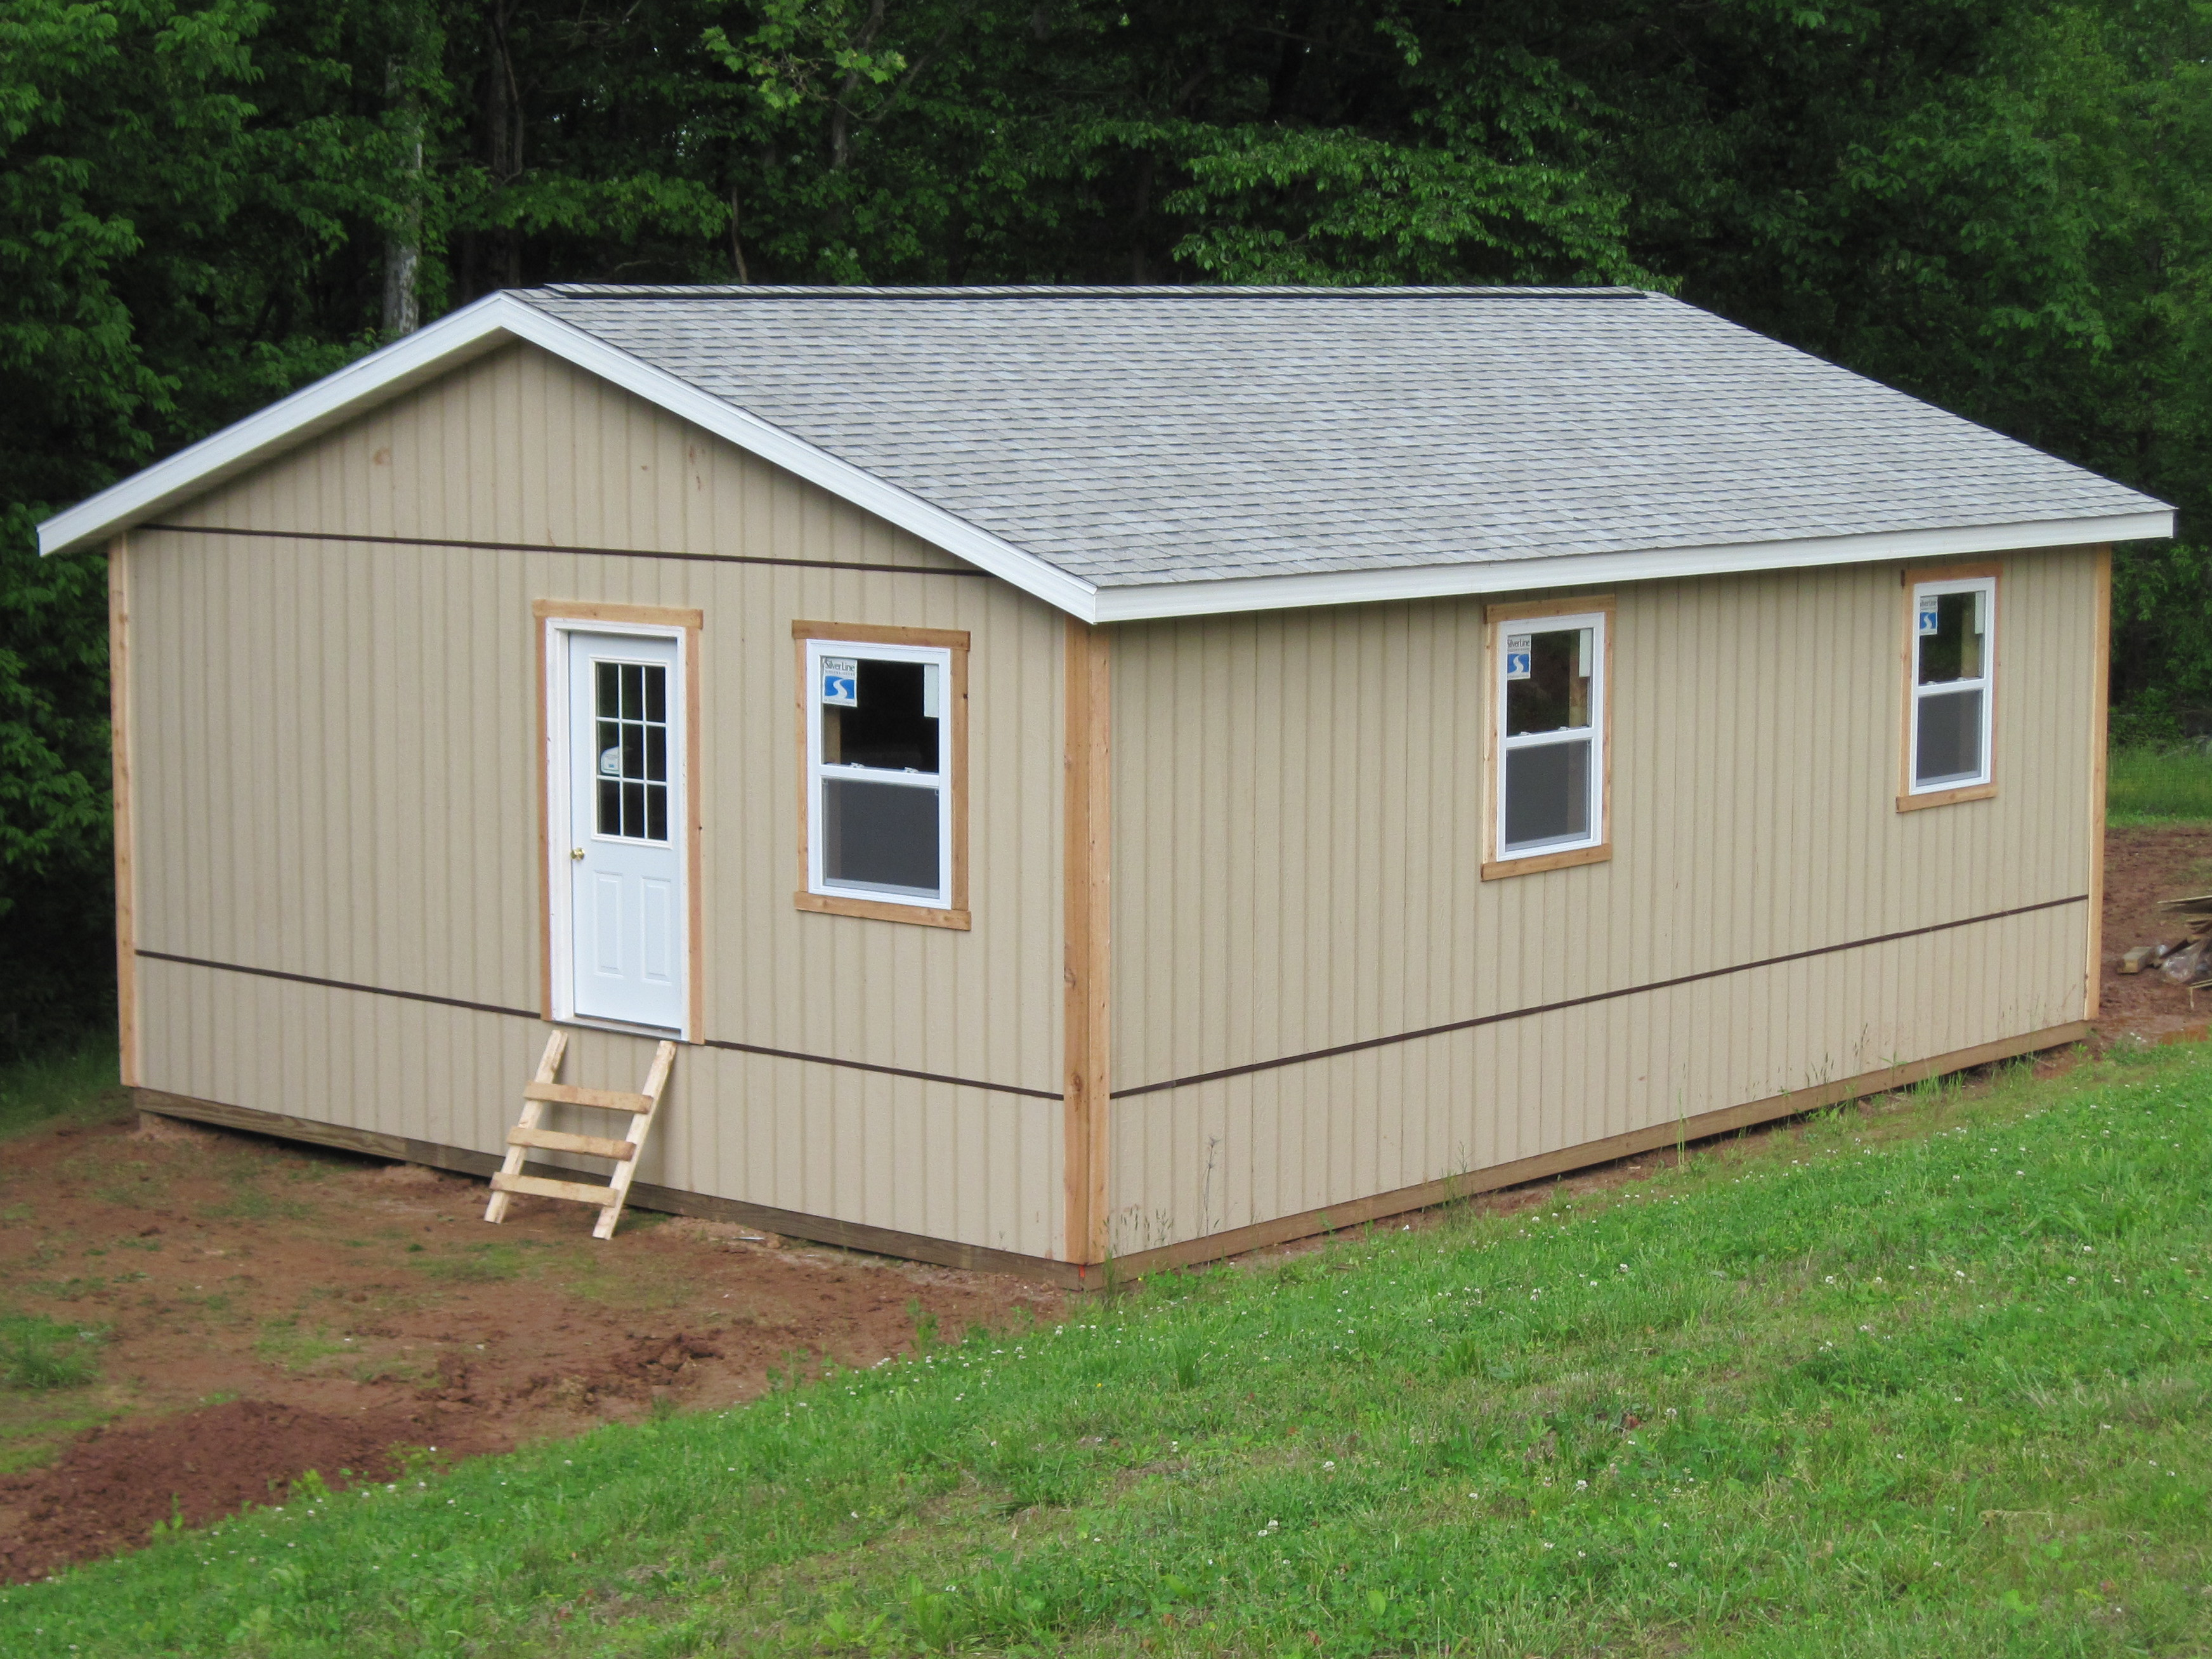 built garages a products vinyl barns white cream sheds amish pine frame ridge